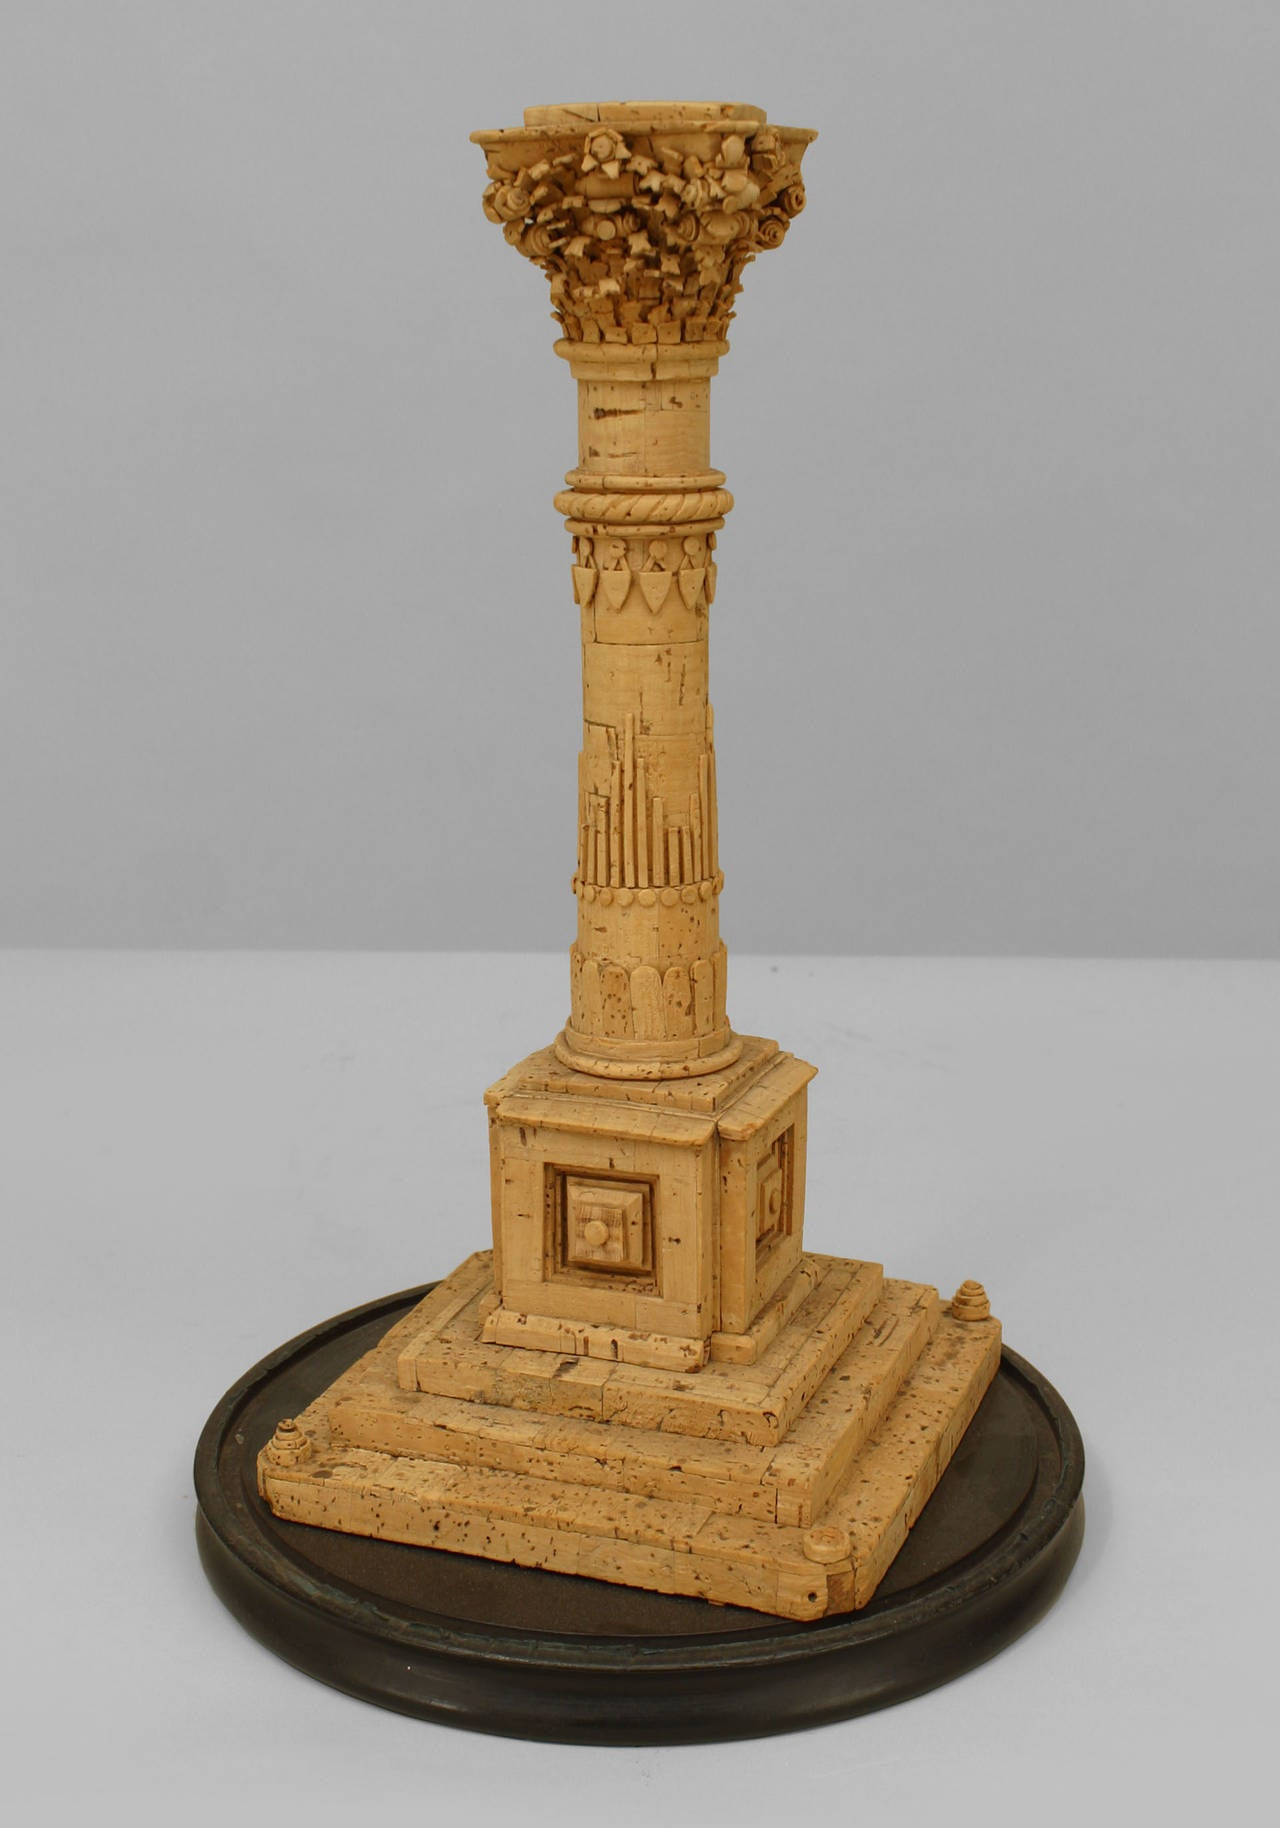 19th century Italian neoclassical cork carved model of a classical column with a Corinthian capital and resting on a stepped square base.